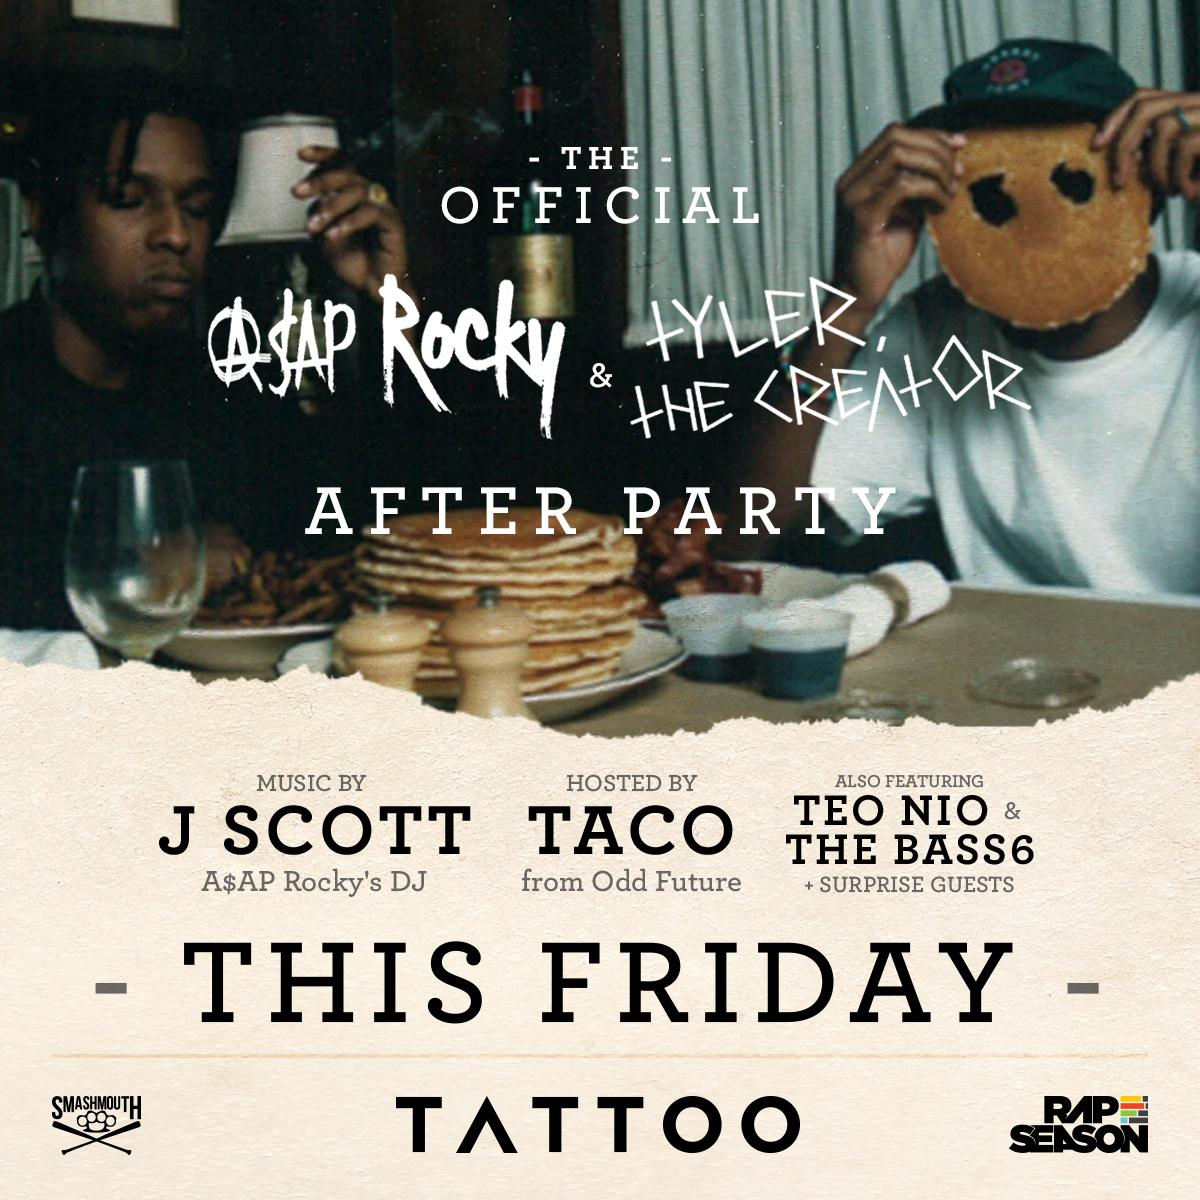 The #RockyTyler after party goes down Friday w/ @JscottandShit @oddfuckingtaco & more! http://t.co/OykAPhRy86 http://t.co/k0v7bpNXmH